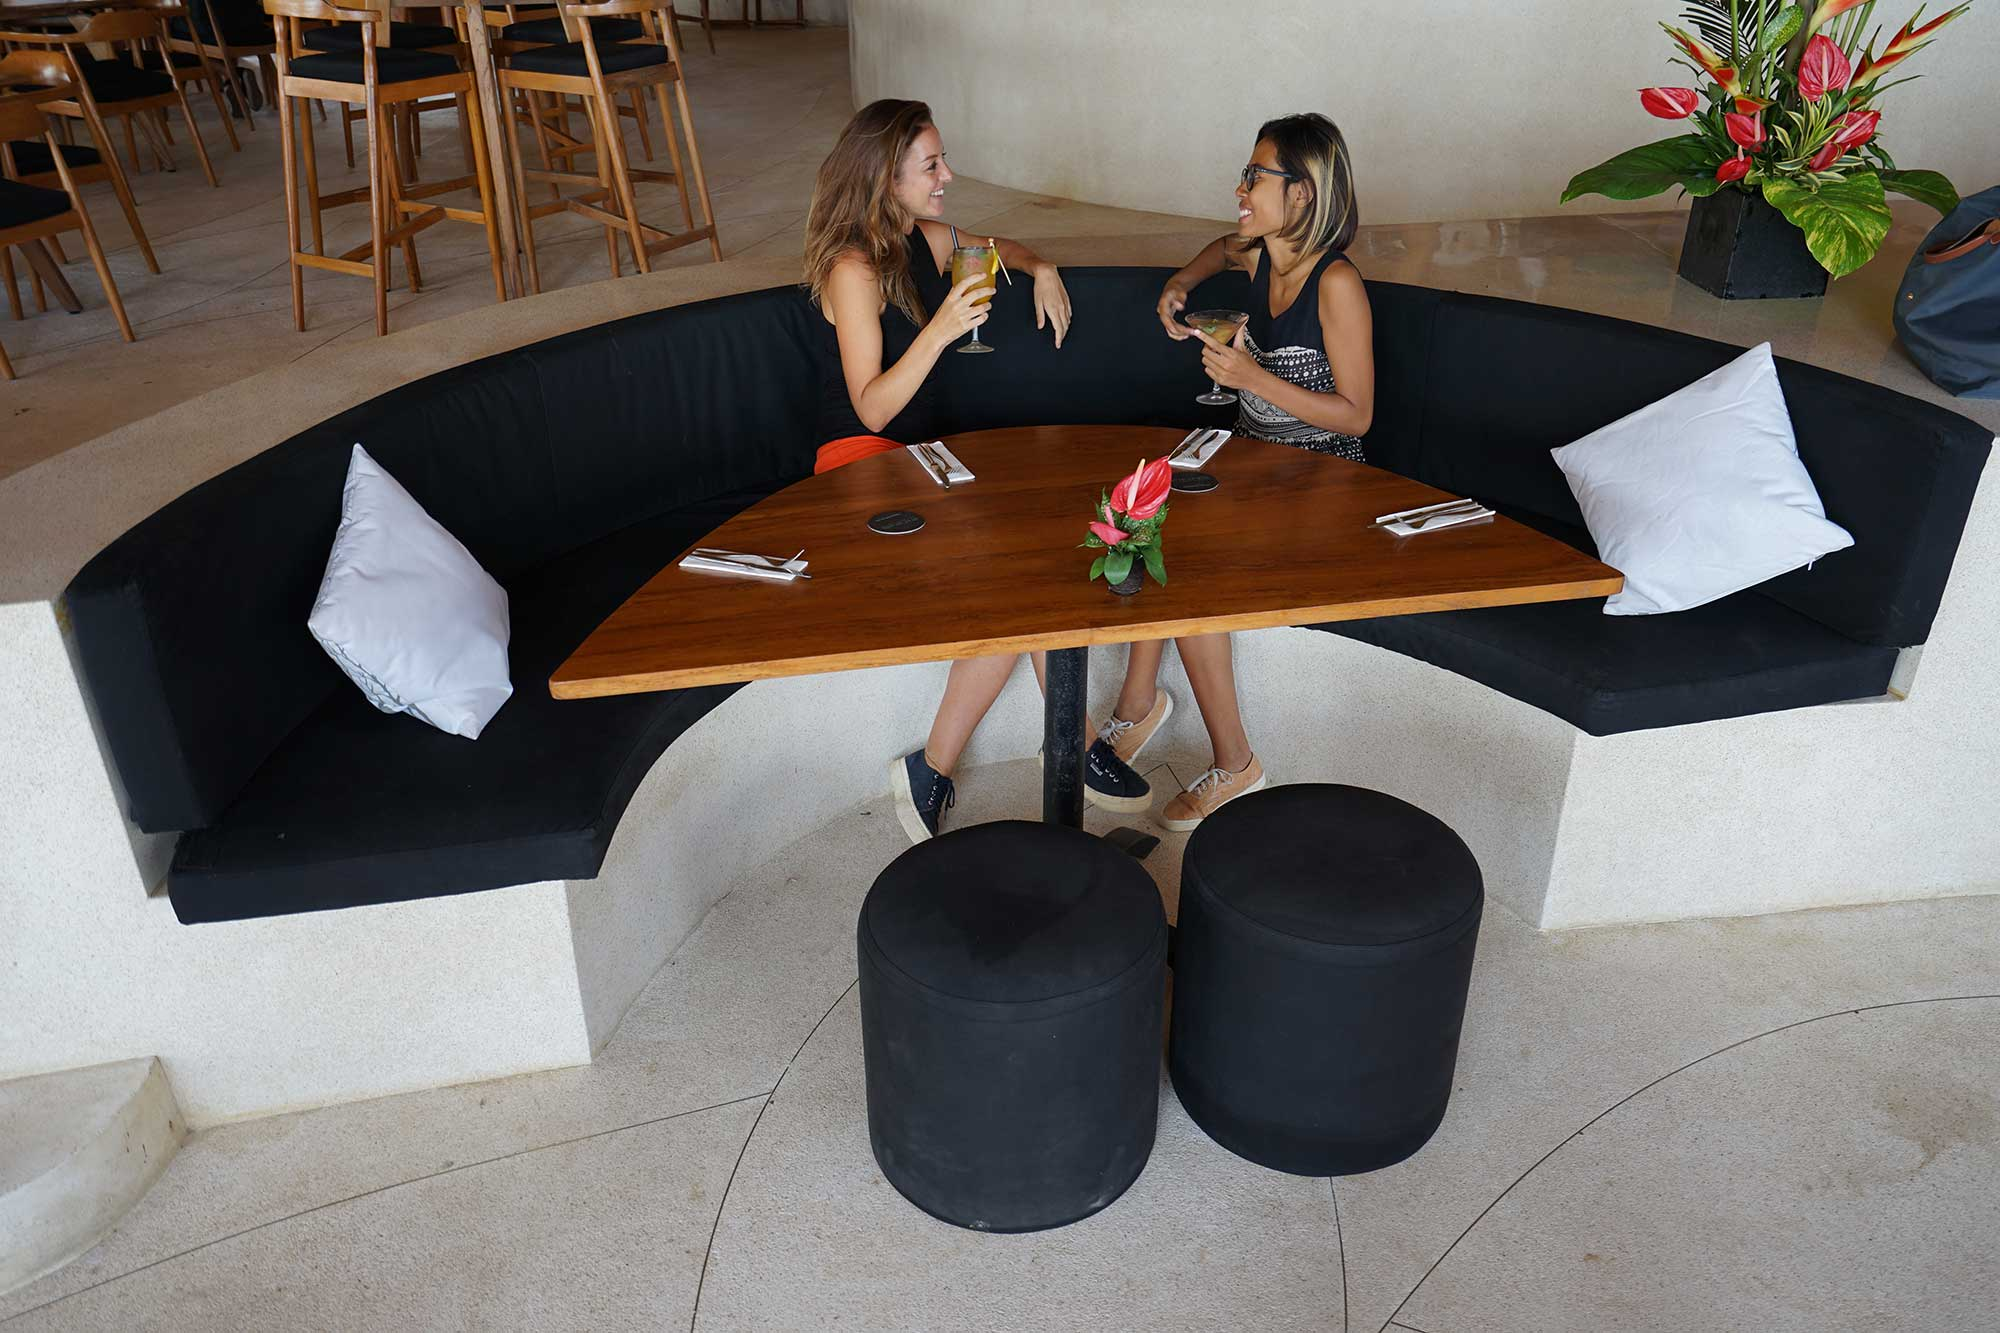 Vip Beds And Booths Finns Beach Club Bali